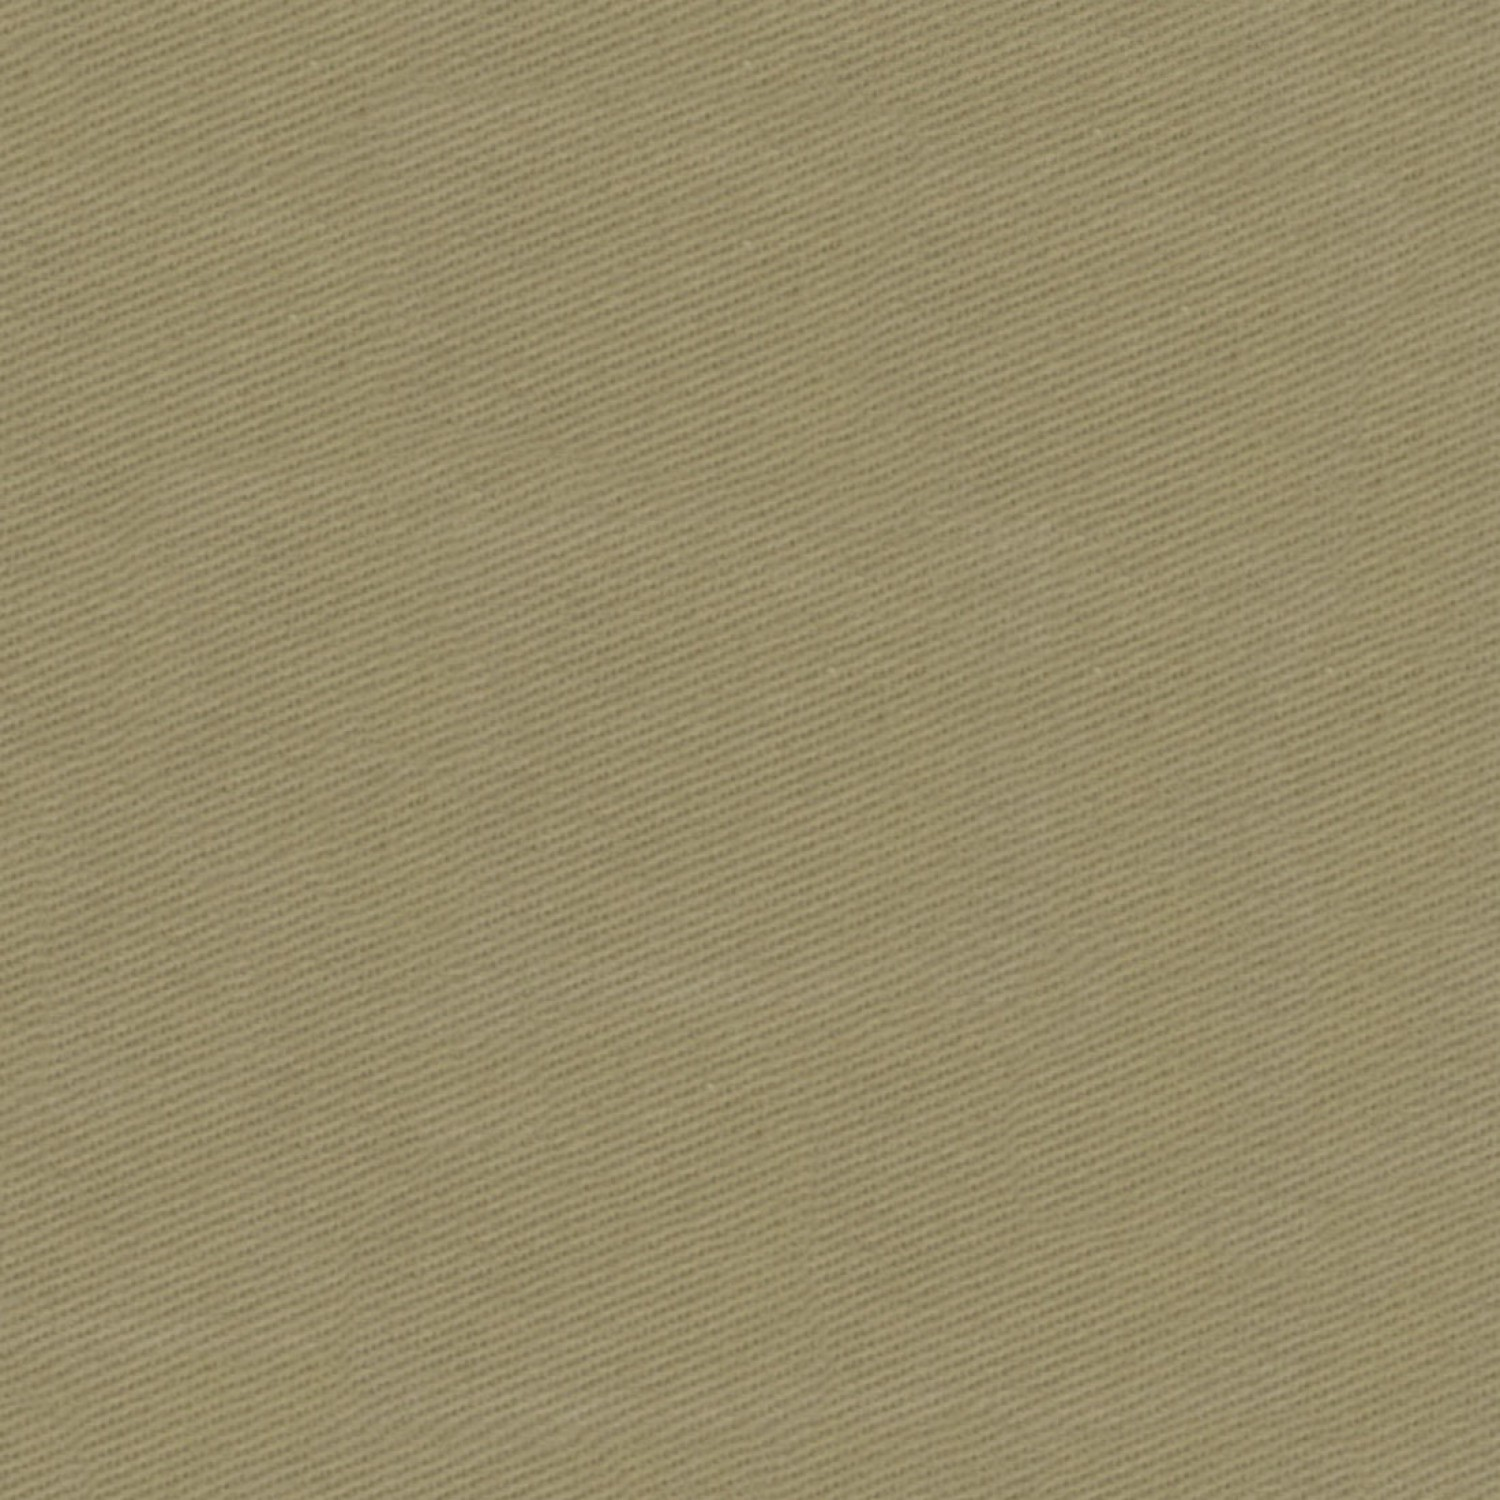 "Milestone Twill Khaki Fabric 7oz - 60"" Wide x Per Yard"